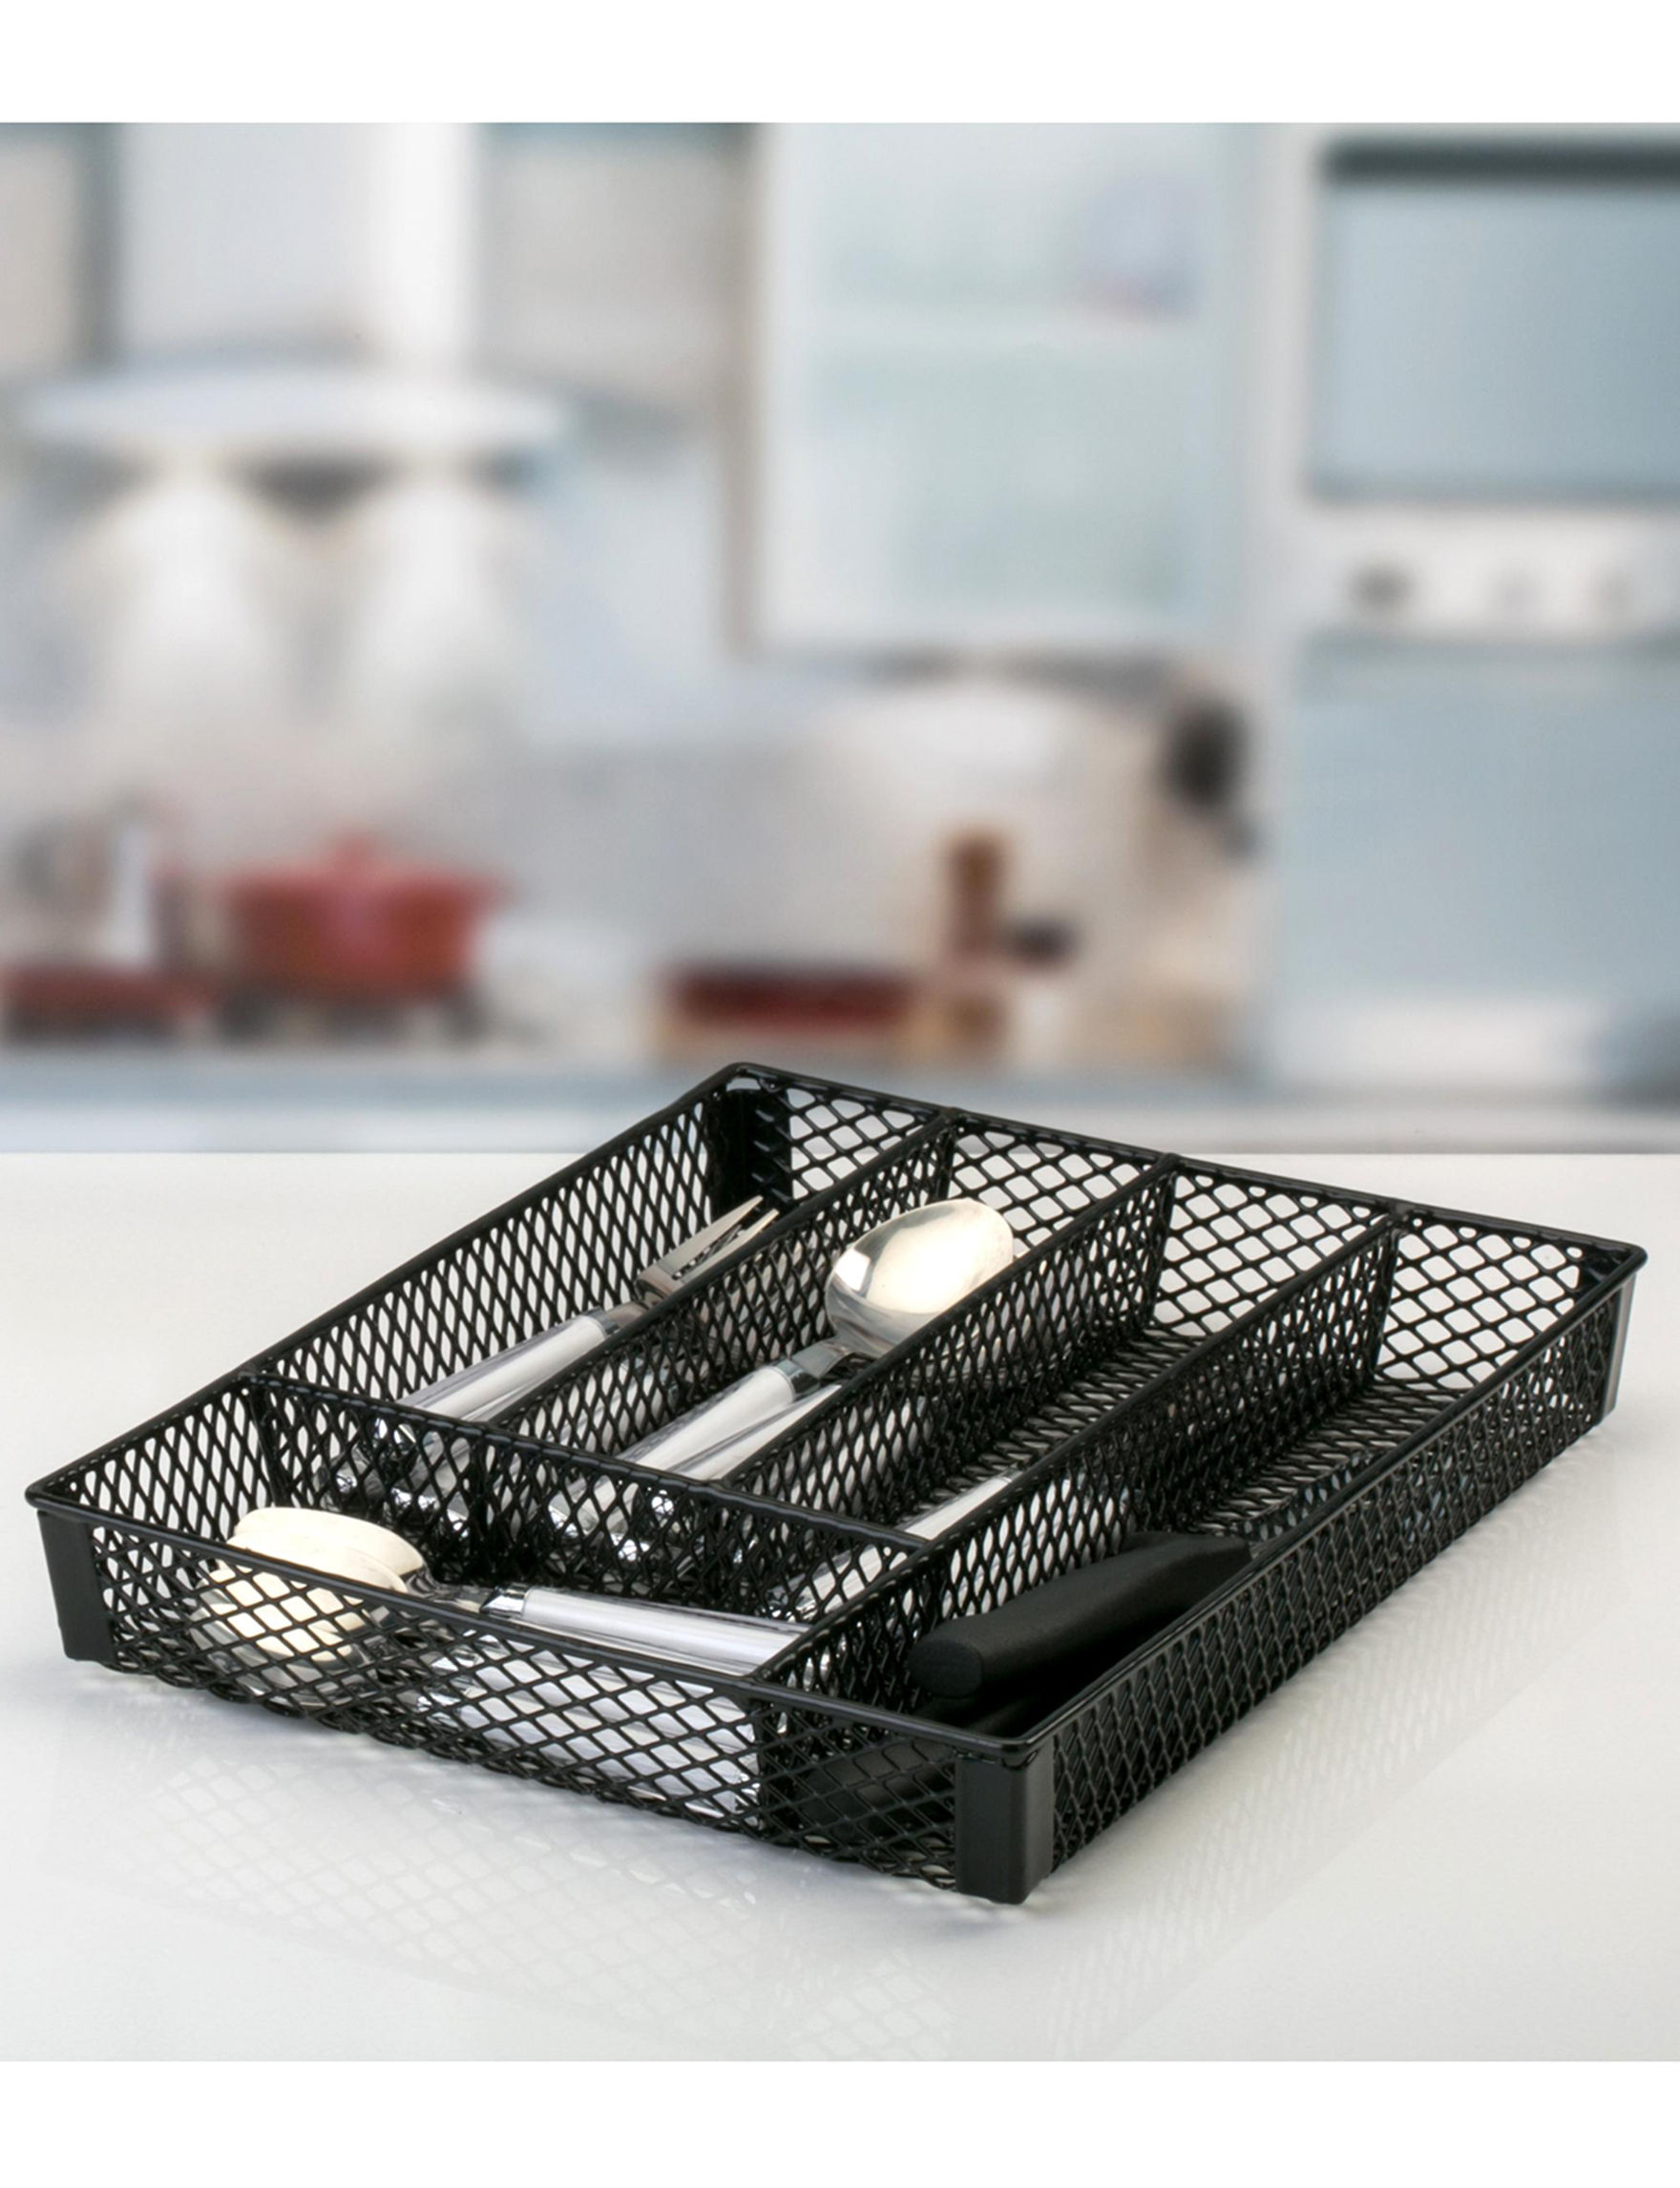 Simplify Black Kitchen Storage & Organization